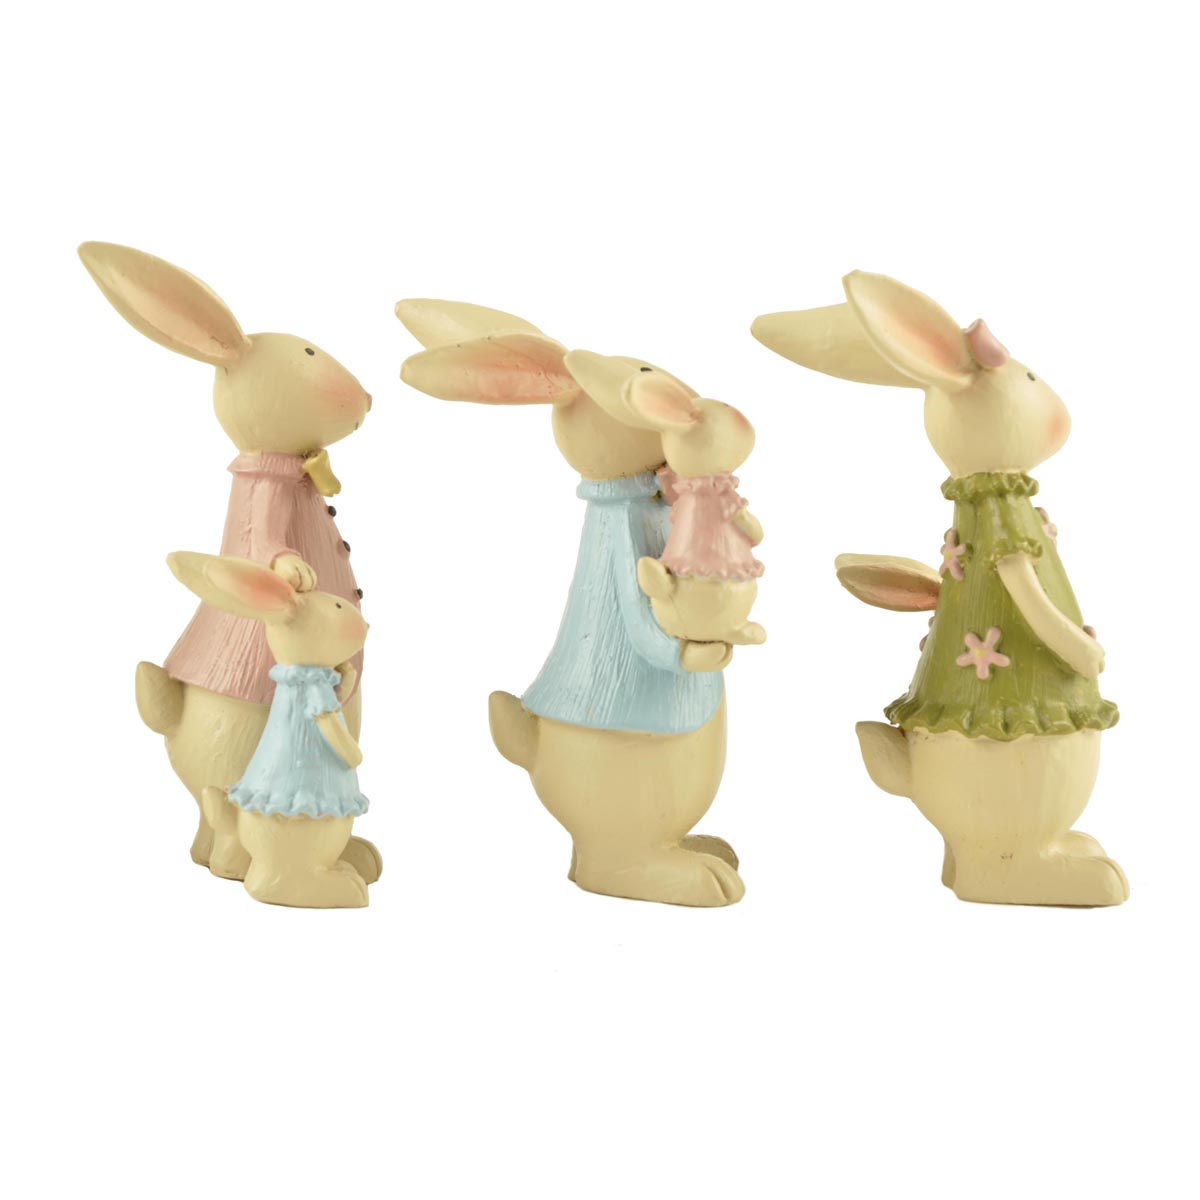 Ennas easter bunny decorations oem micro landscape-2